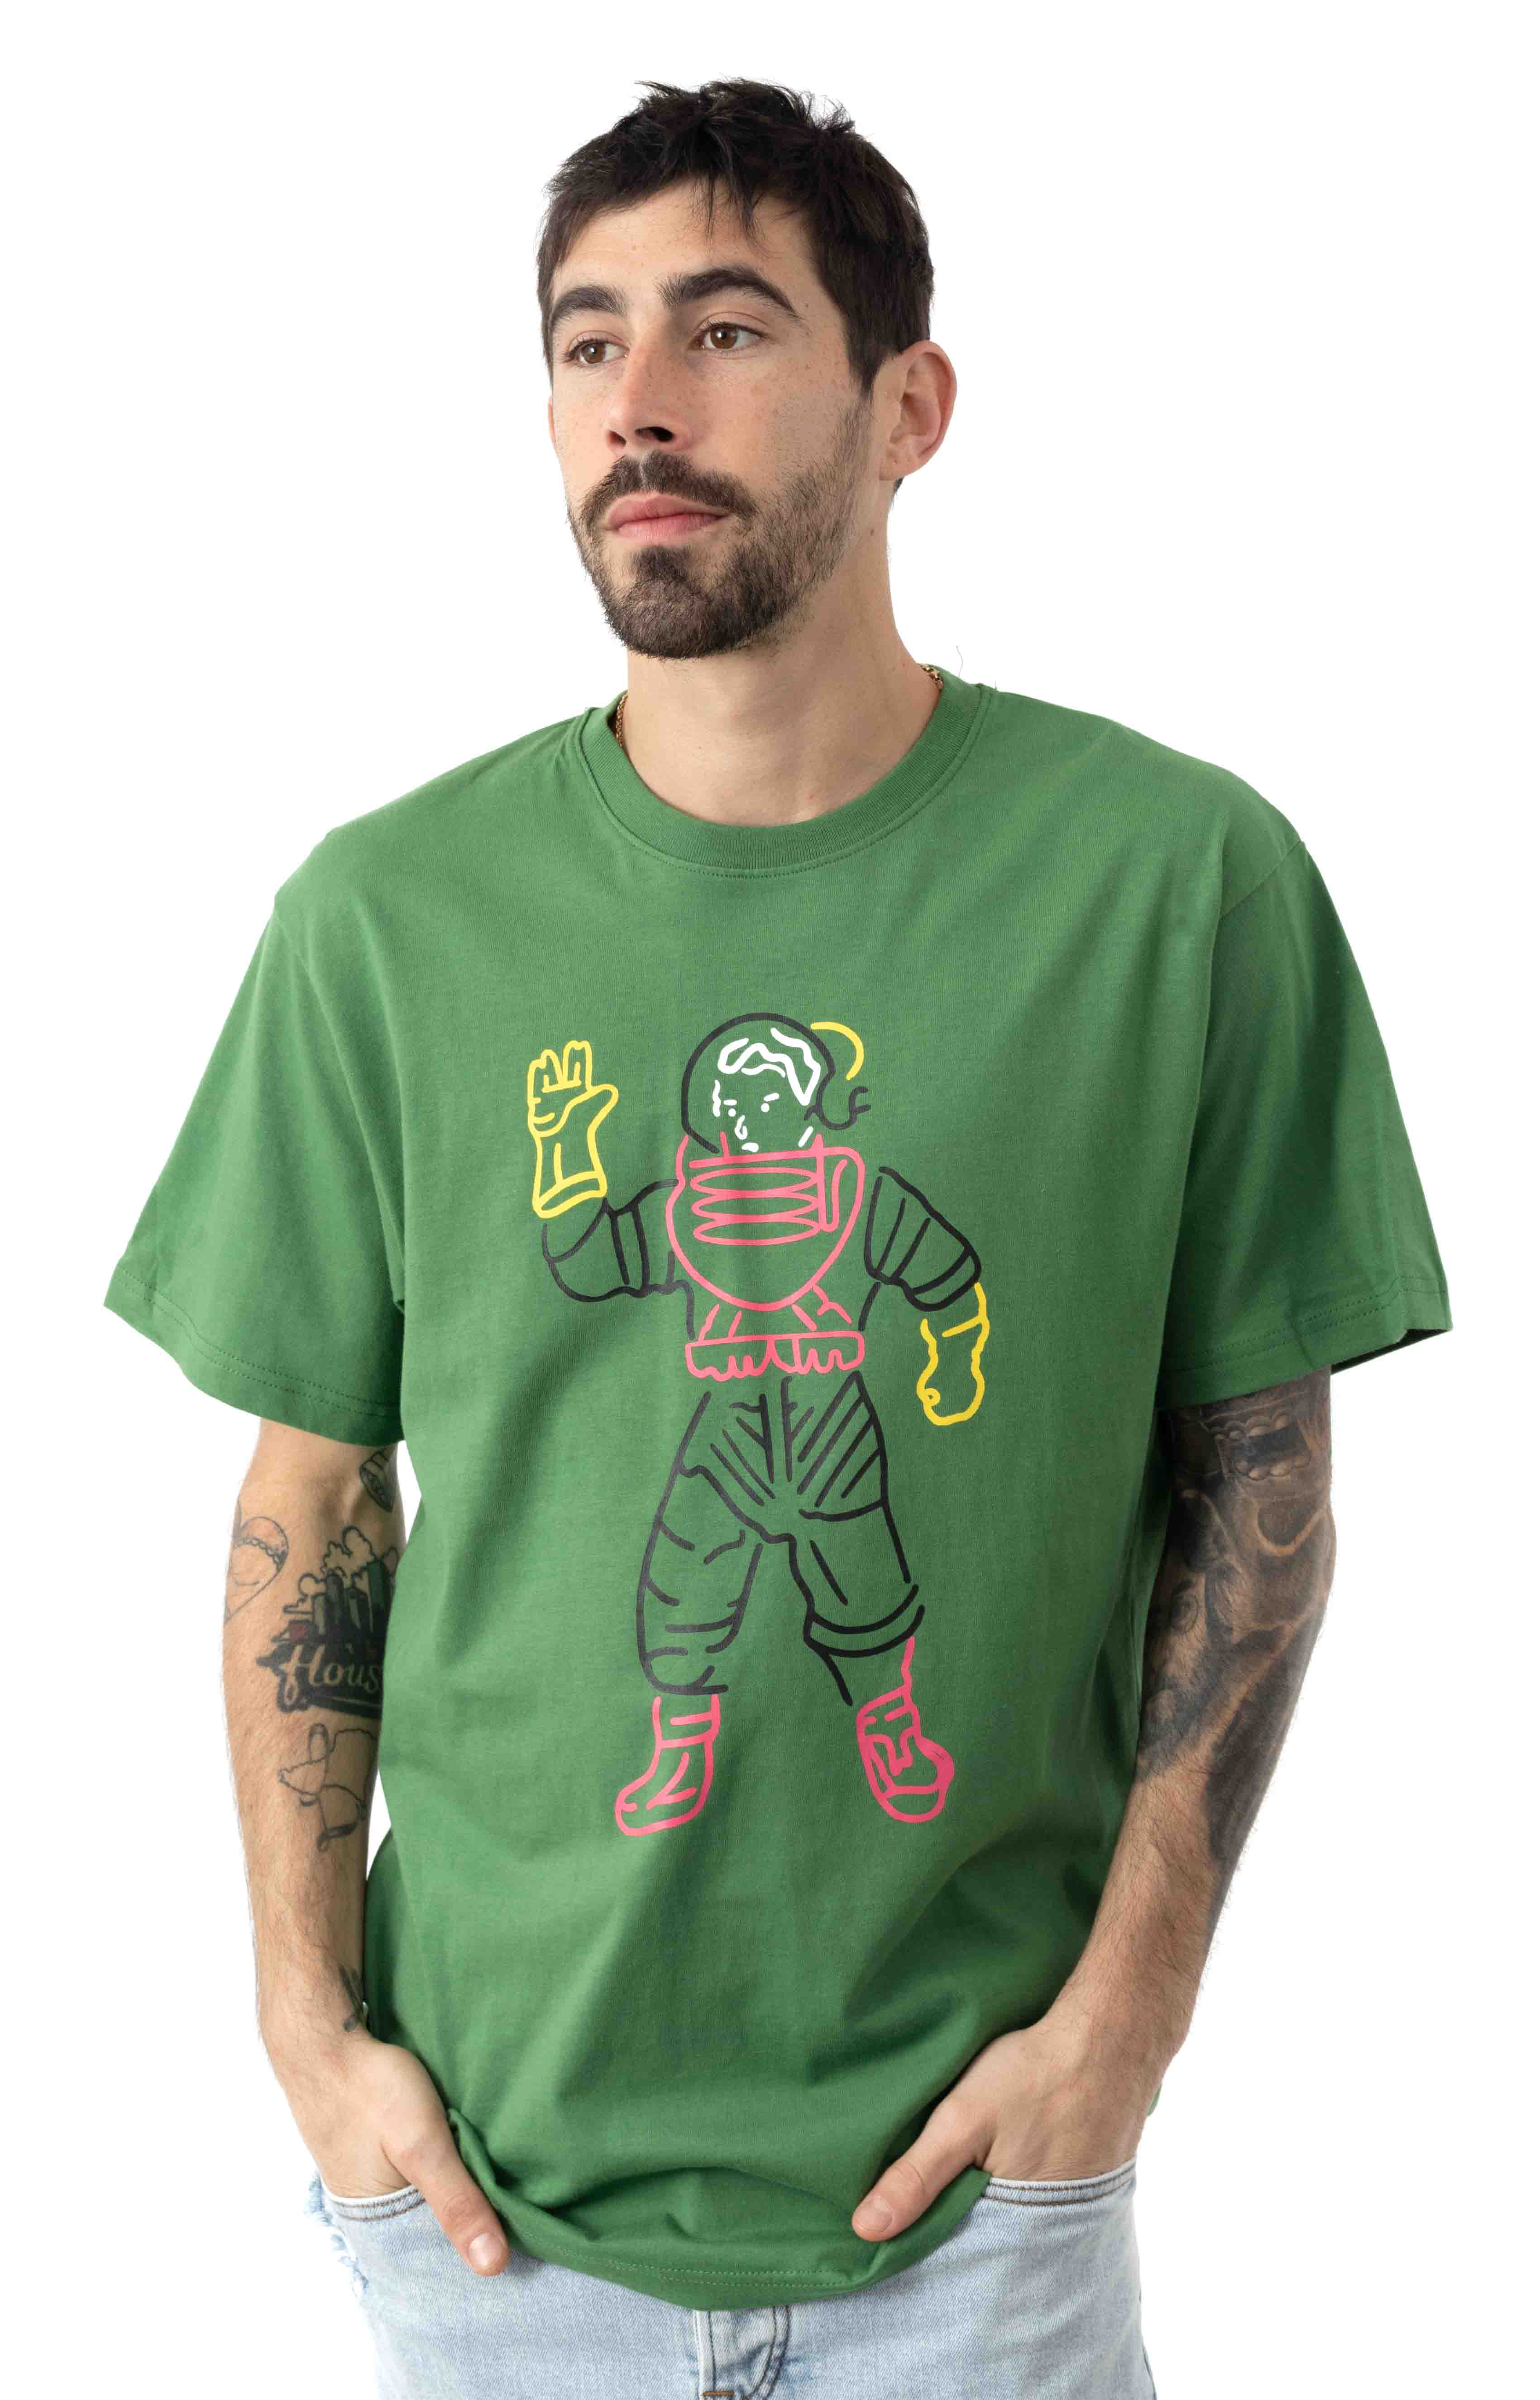 BB Astro Lights T-Shirt - Willow Bough